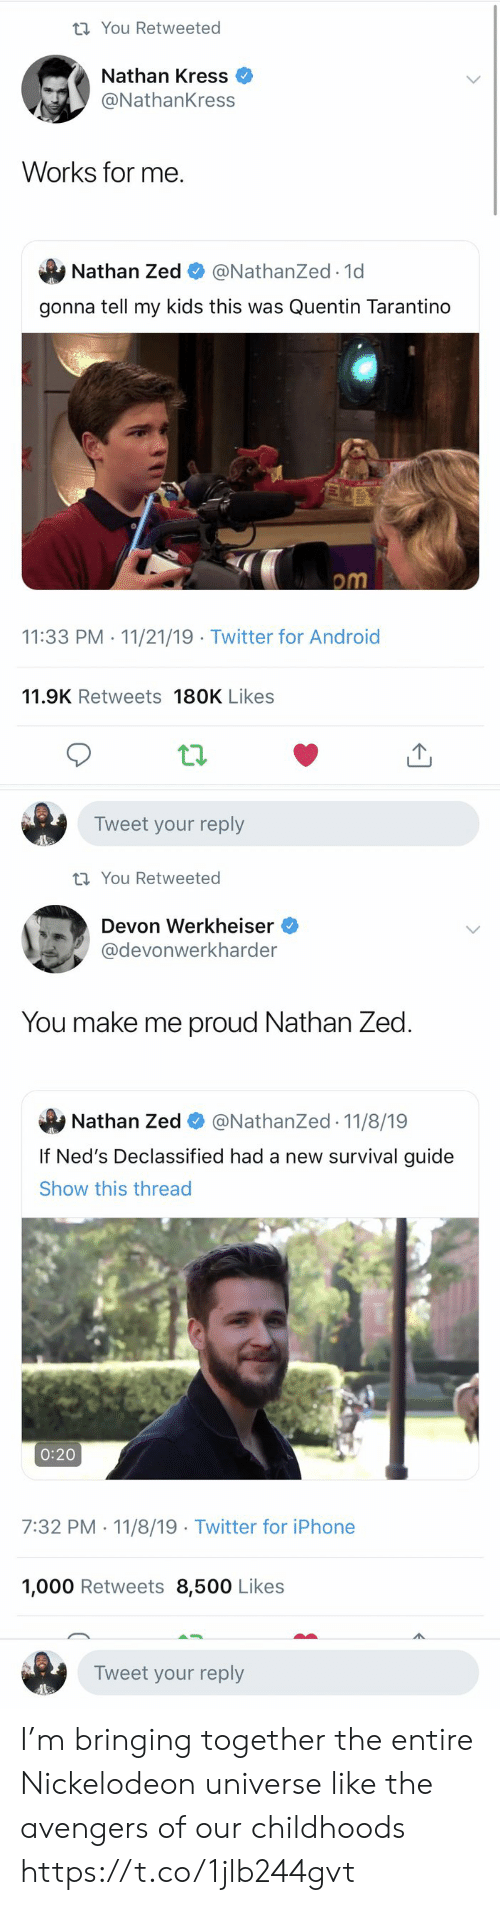 Avengers: t You Retweeted  Nathan Kress  @NathanKress  Works for me  Nathan Zed  @NathanZed.1d  gonna tell my kids this was Quentin Tarantino  om  11:33 PM 11/21/19 Twitter for Android  .  11.9K Retweets 180K Likes  Tweet your reply   t You Retweeted  Devon Werkheiser  @devonwerkharder  You make me proud Nathan Zed  @NathanZed 11/8/19  Nathan Zed  If Ned's Declassified had a new survival guide  Show this thread  0:20  7:32 PM 11/8/19 Twitter for iPhone  1,000 Retweets 8,500 Likes  Tweet your reply I'm bringing together the entire Nickelodeon universe like the avengers of our childhoods https://t.co/1jlb244gvt